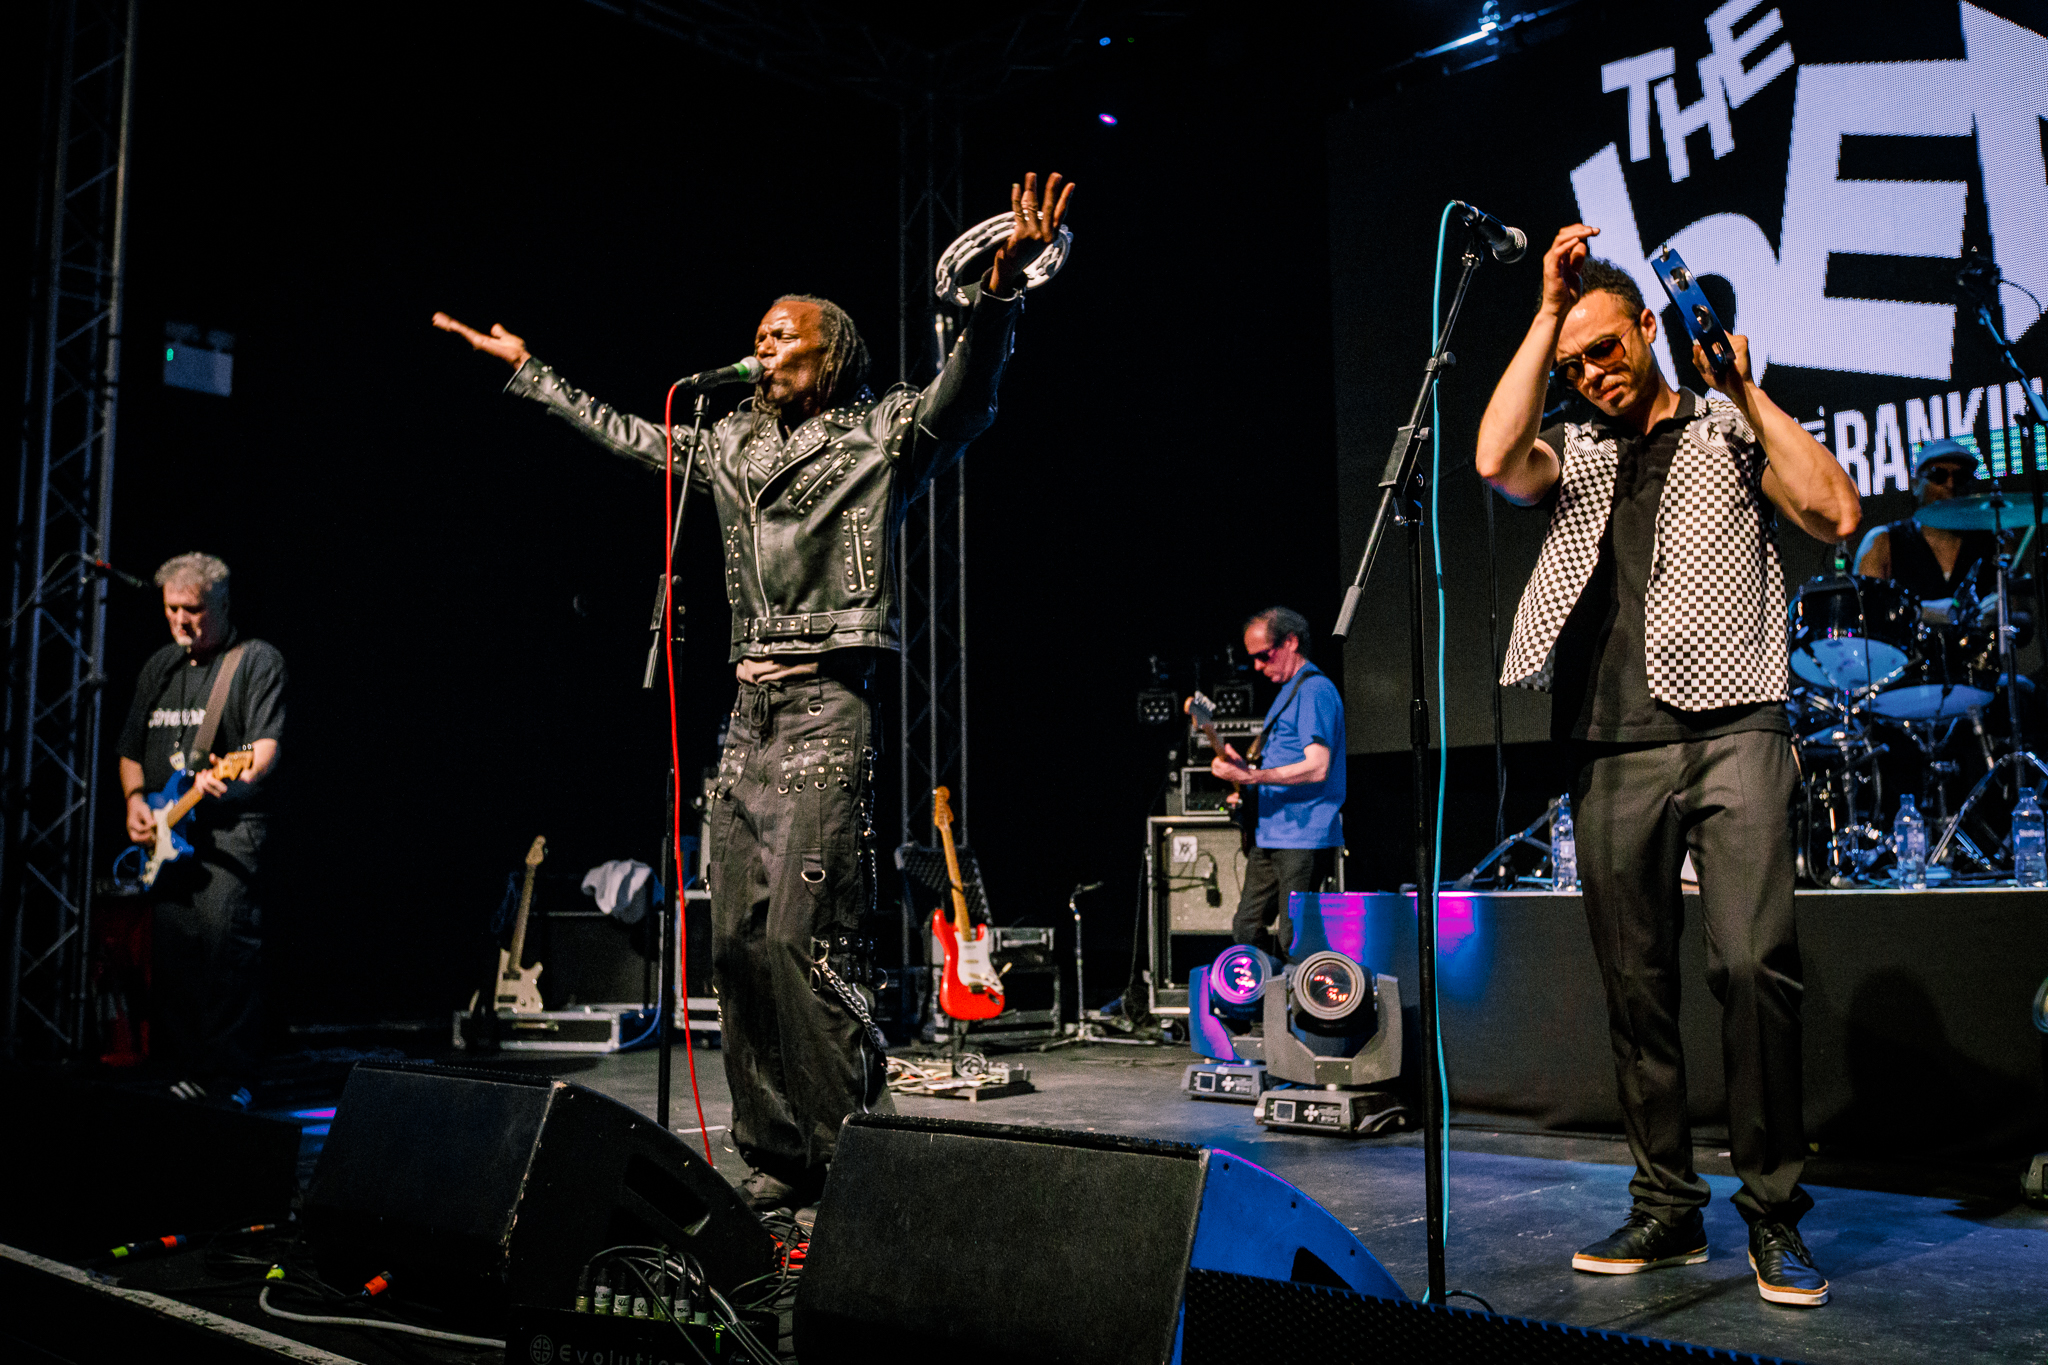 The Beat feat. Ranking Roger performing at The Forum Hertfordshire in Hatfield, England - 5/26/2018 (photo by Matt Condon / @arcane93)